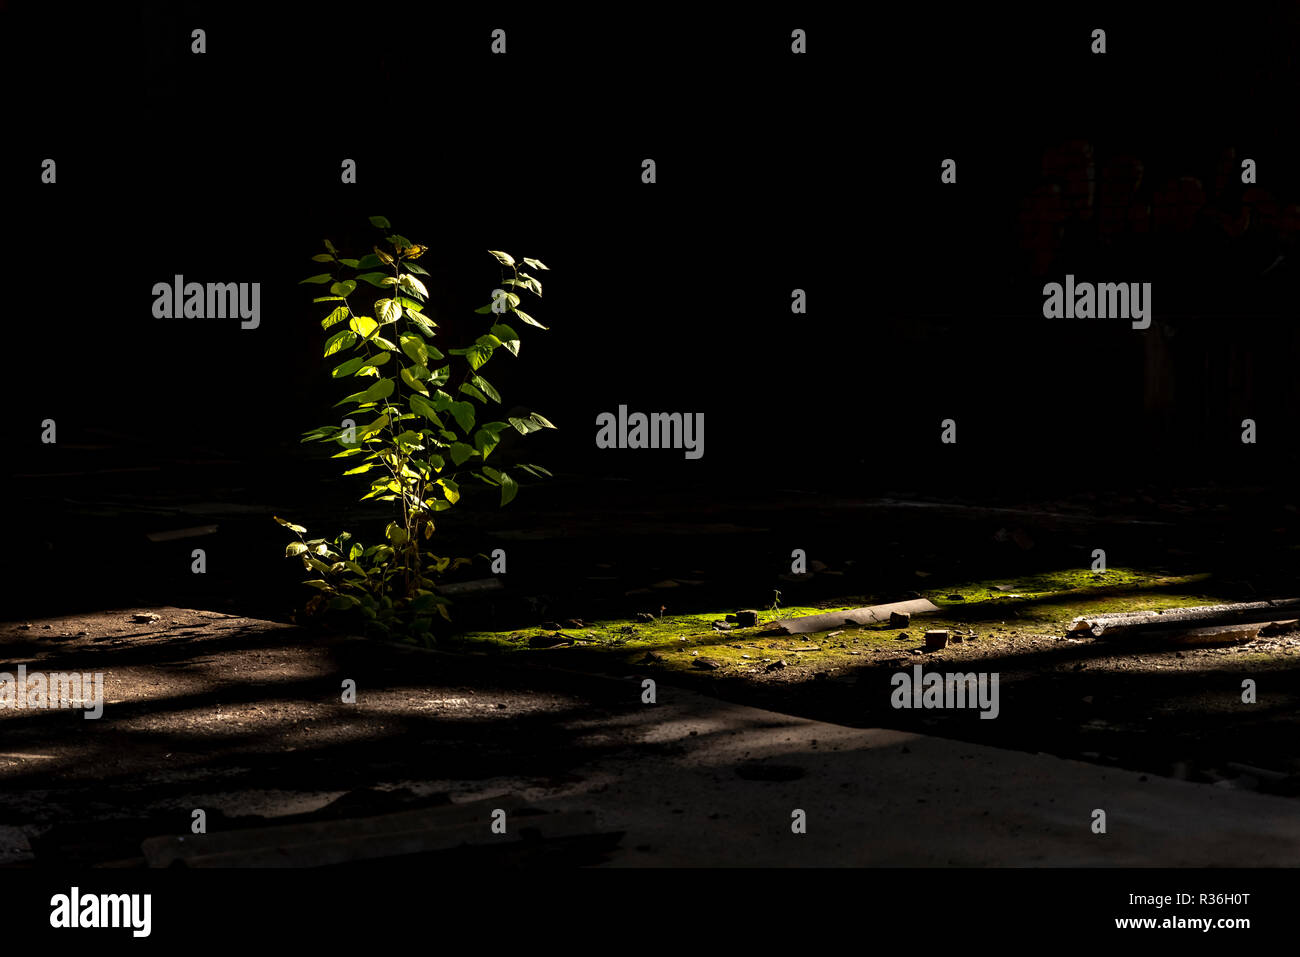 Spontaneous young plant growing under sunrays filtered in inside abandoned factory - Stock Image